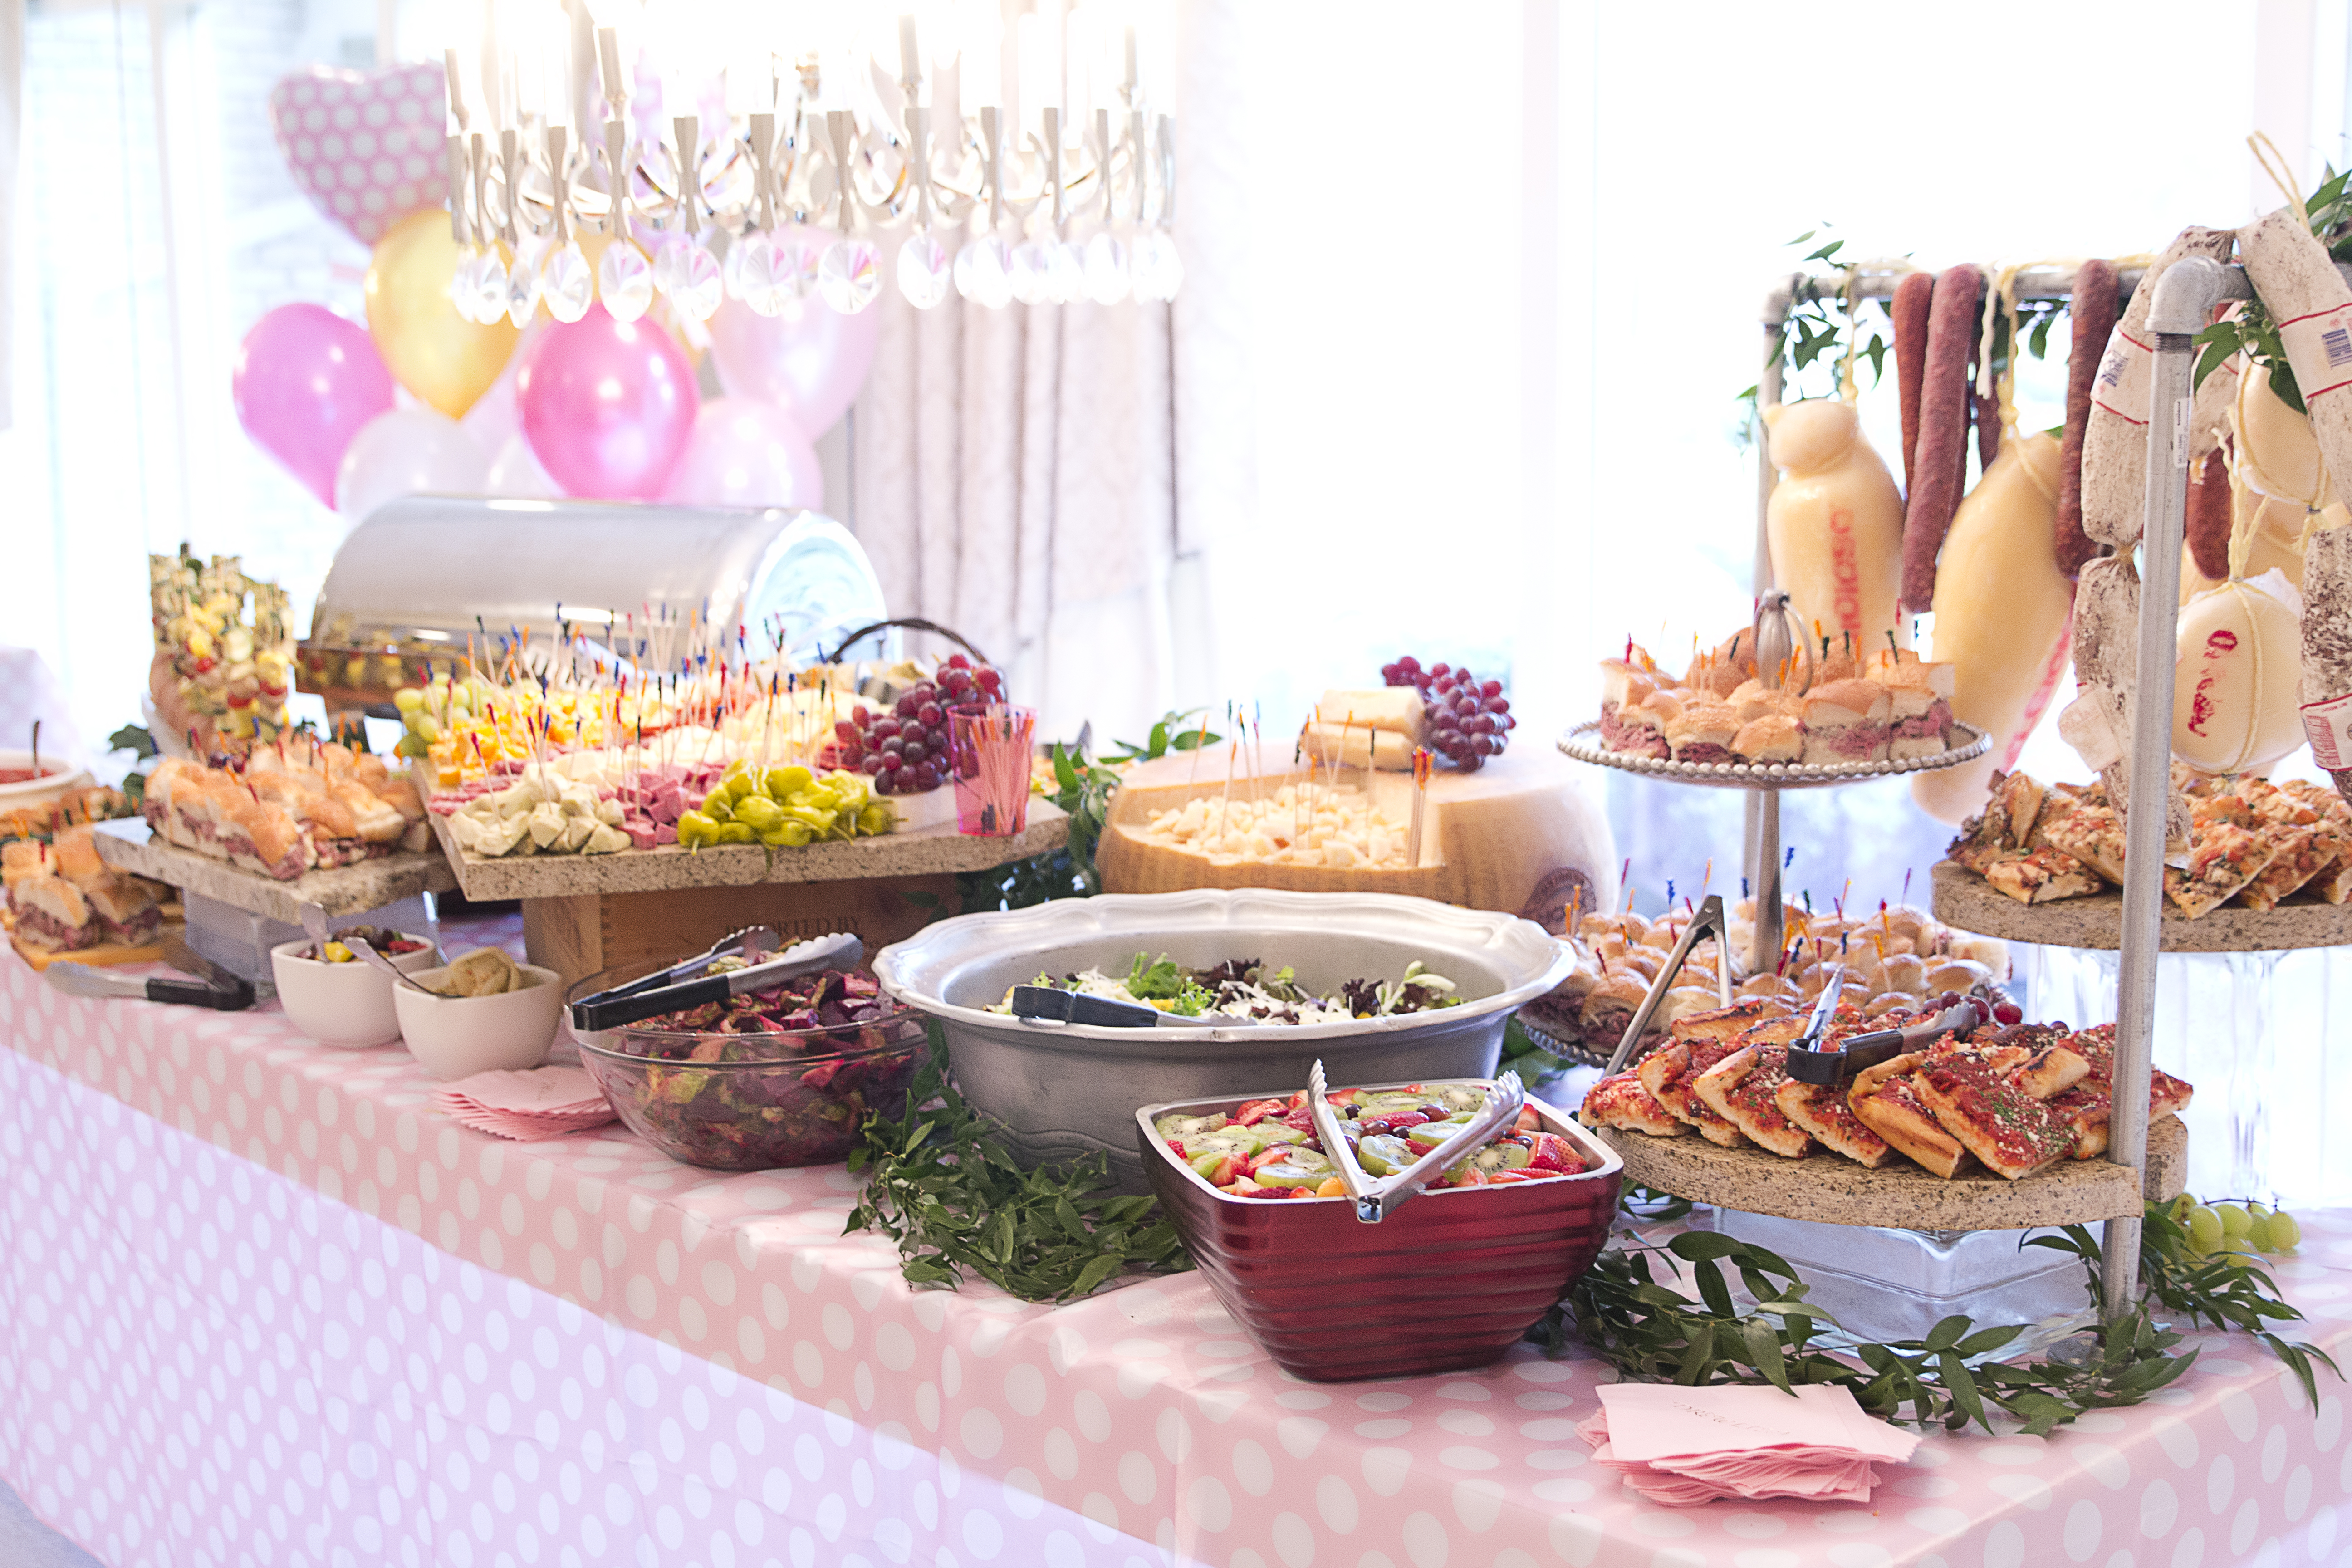 Alesci - Party Spread - Baby Naming - Shower - Catering